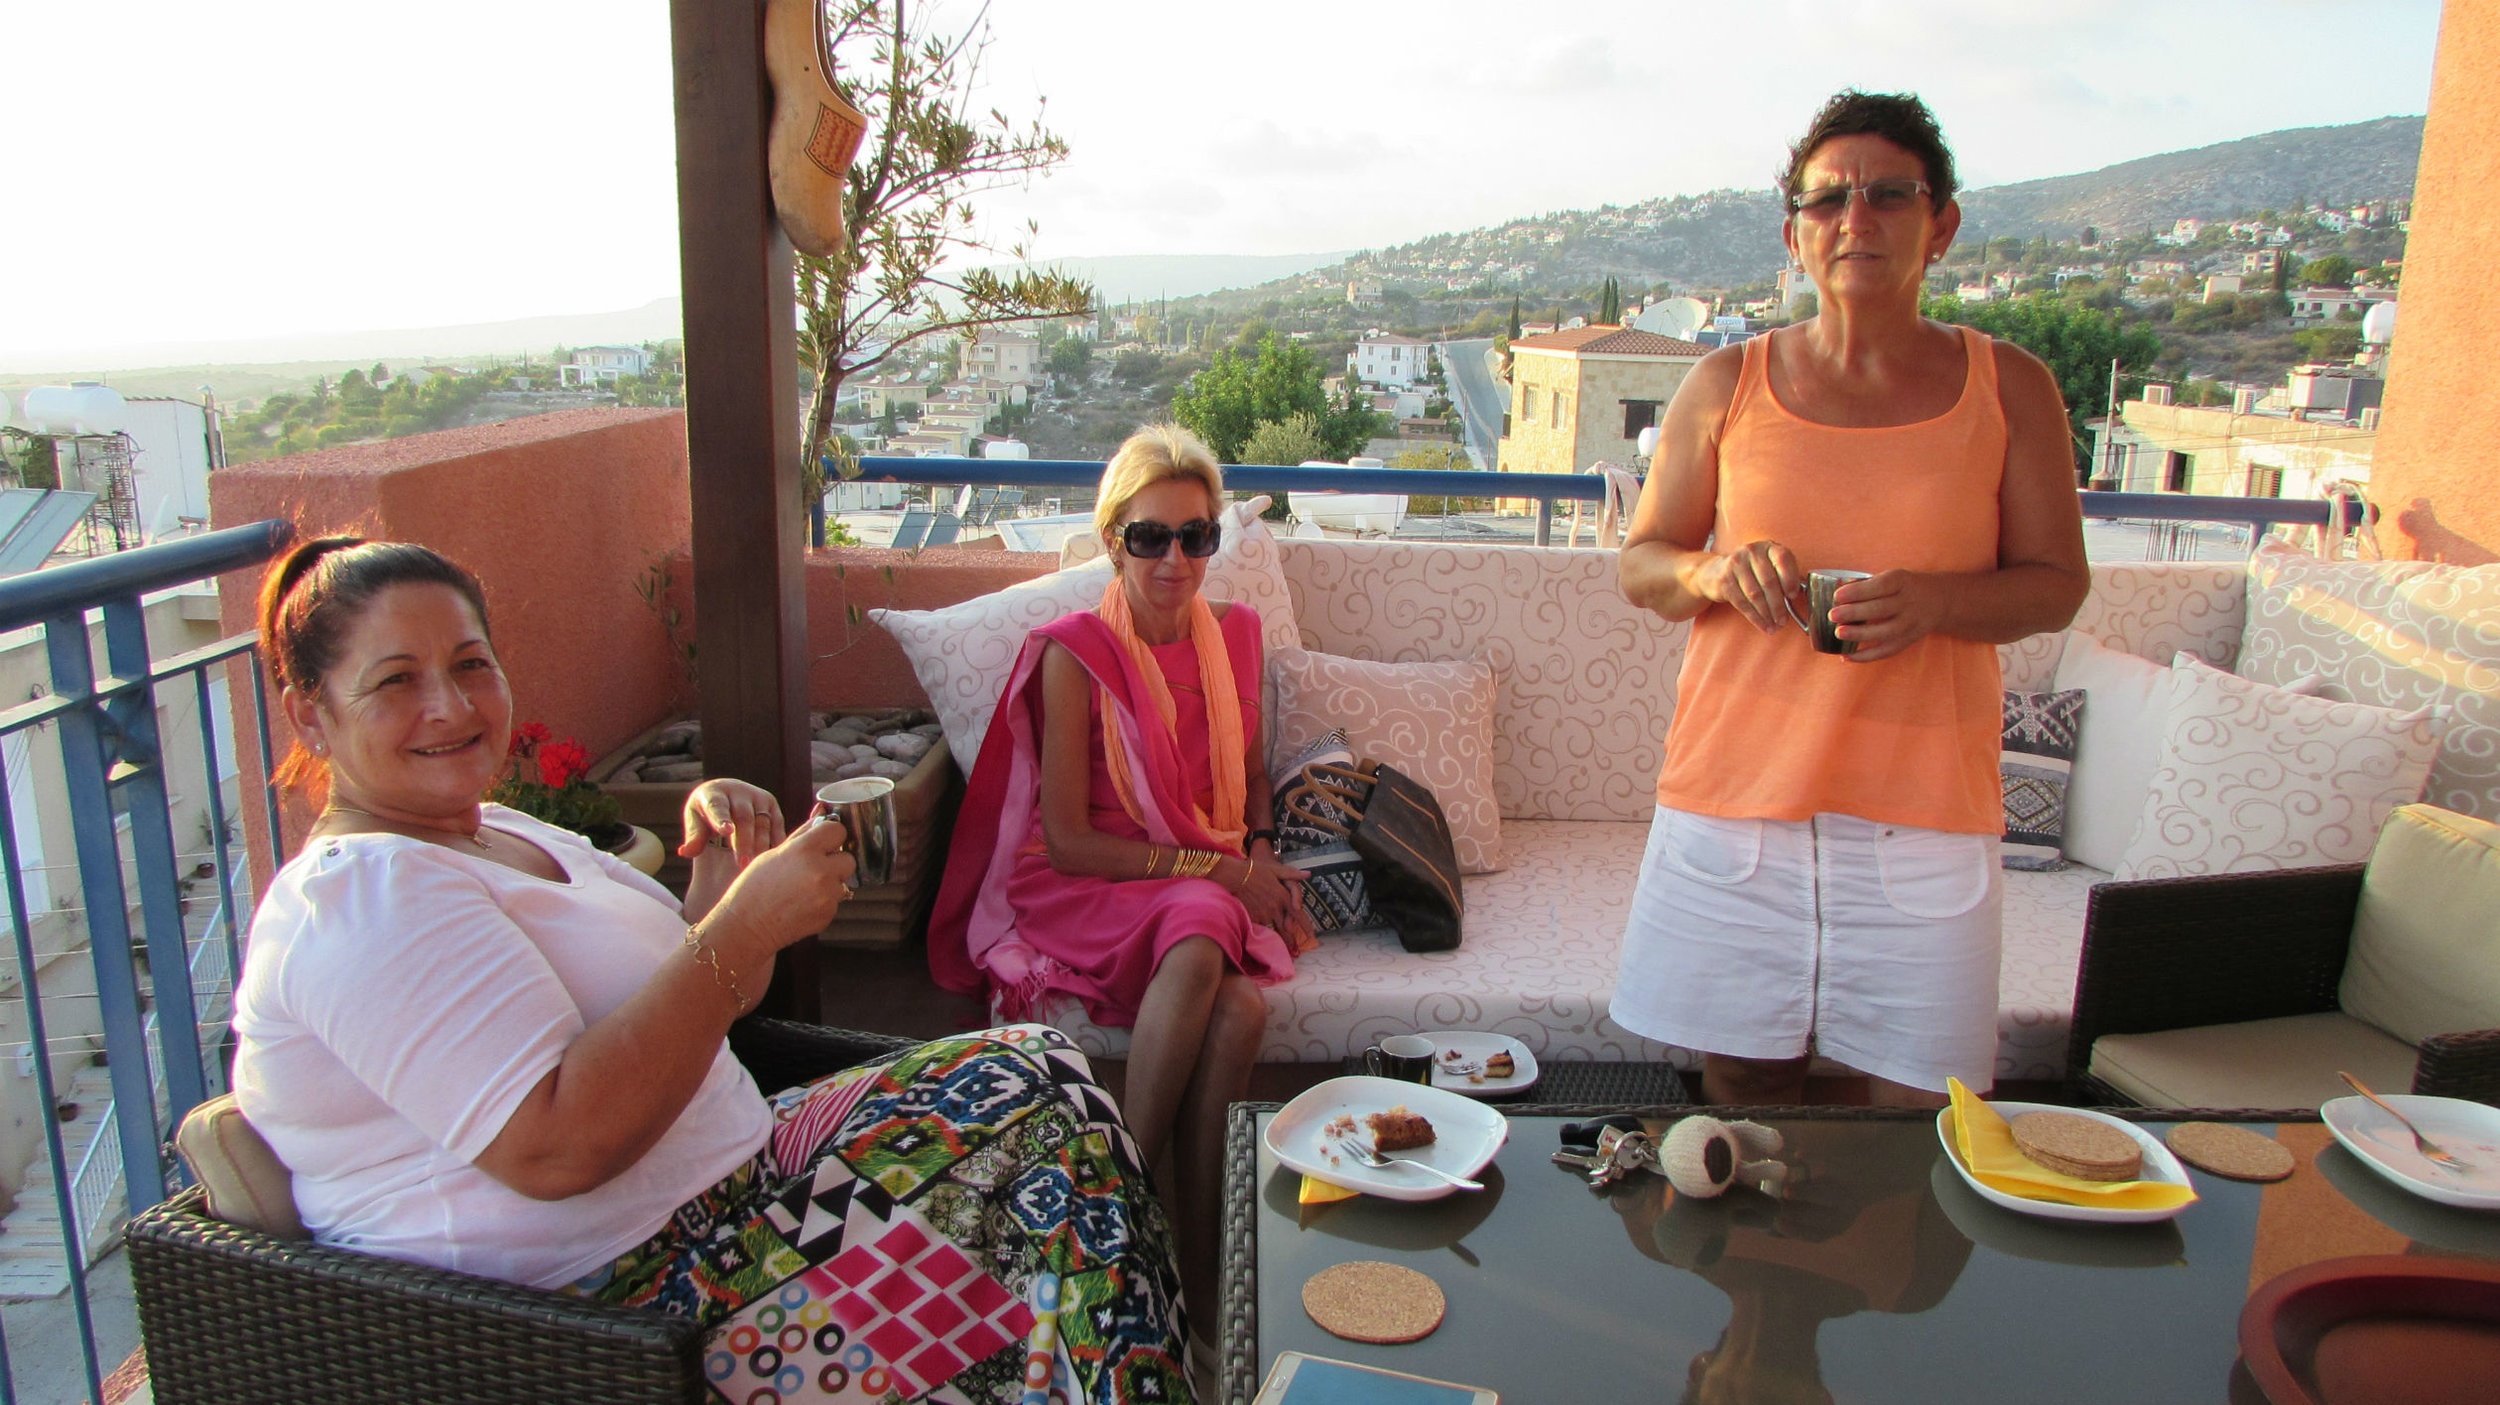 With friends on the terrace. Akamas National Park is on the horizon with its rugged coast line